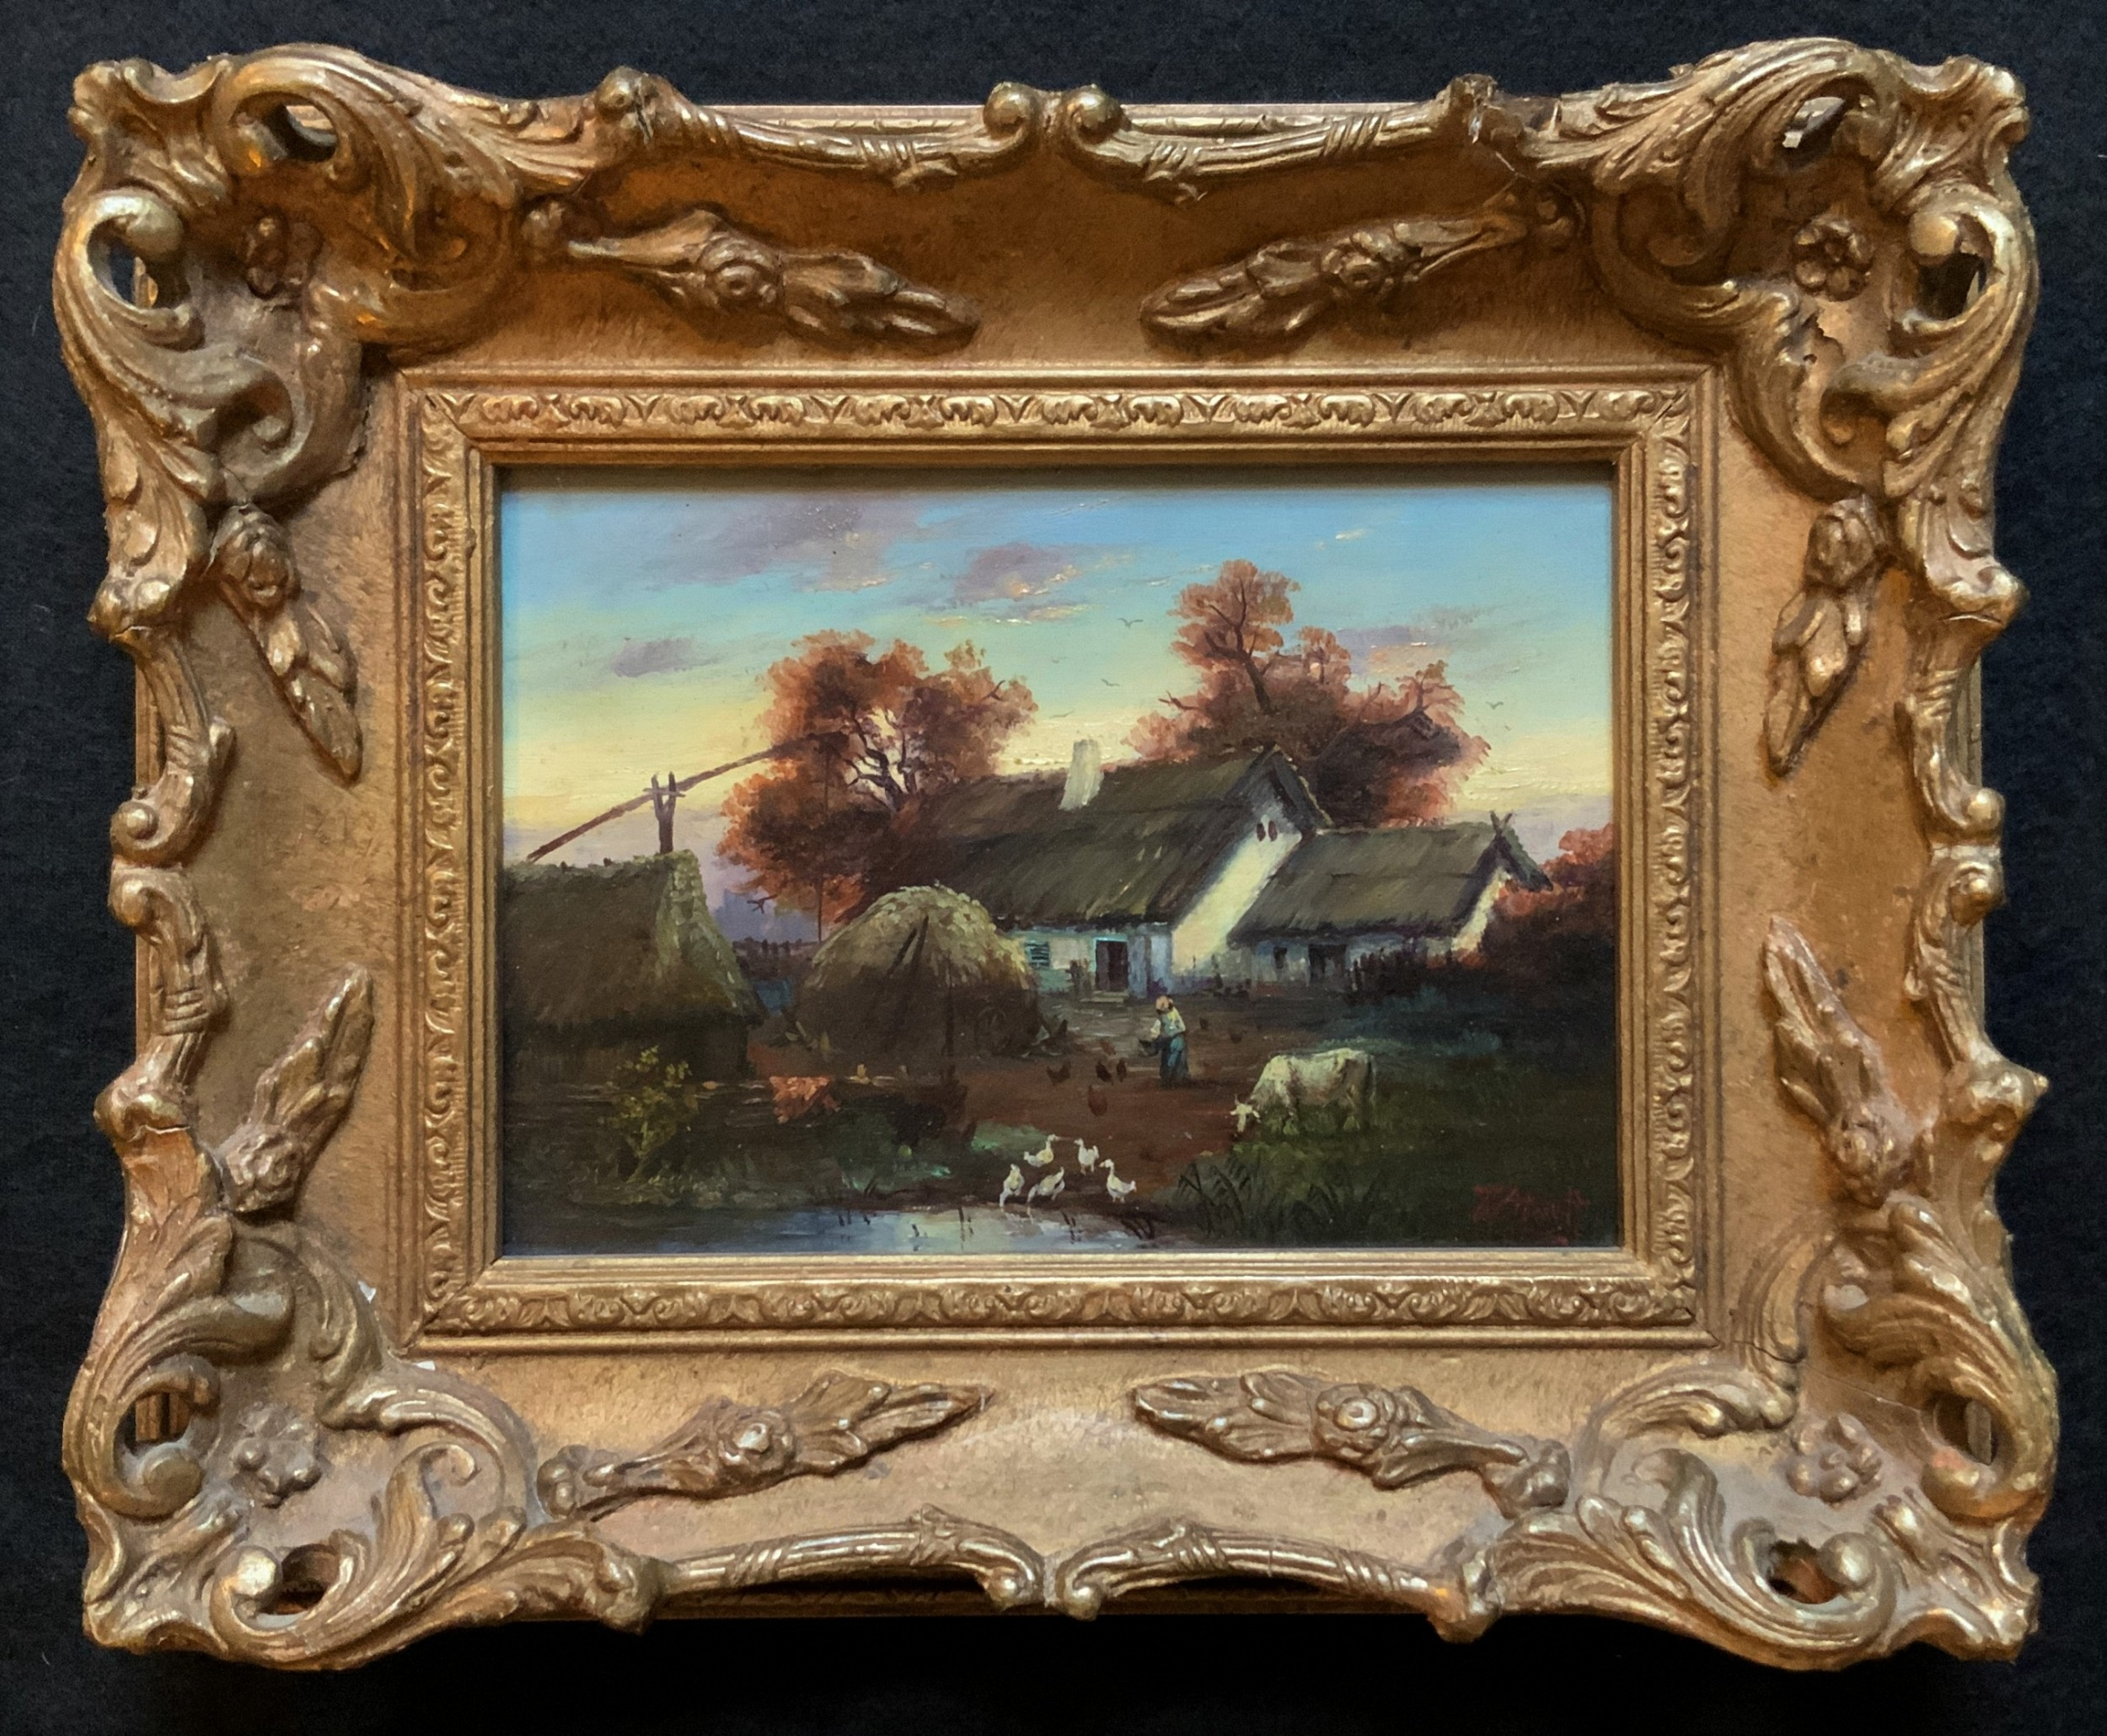 lovely small early 1900s giltframed sunset landscape oil on panel painting